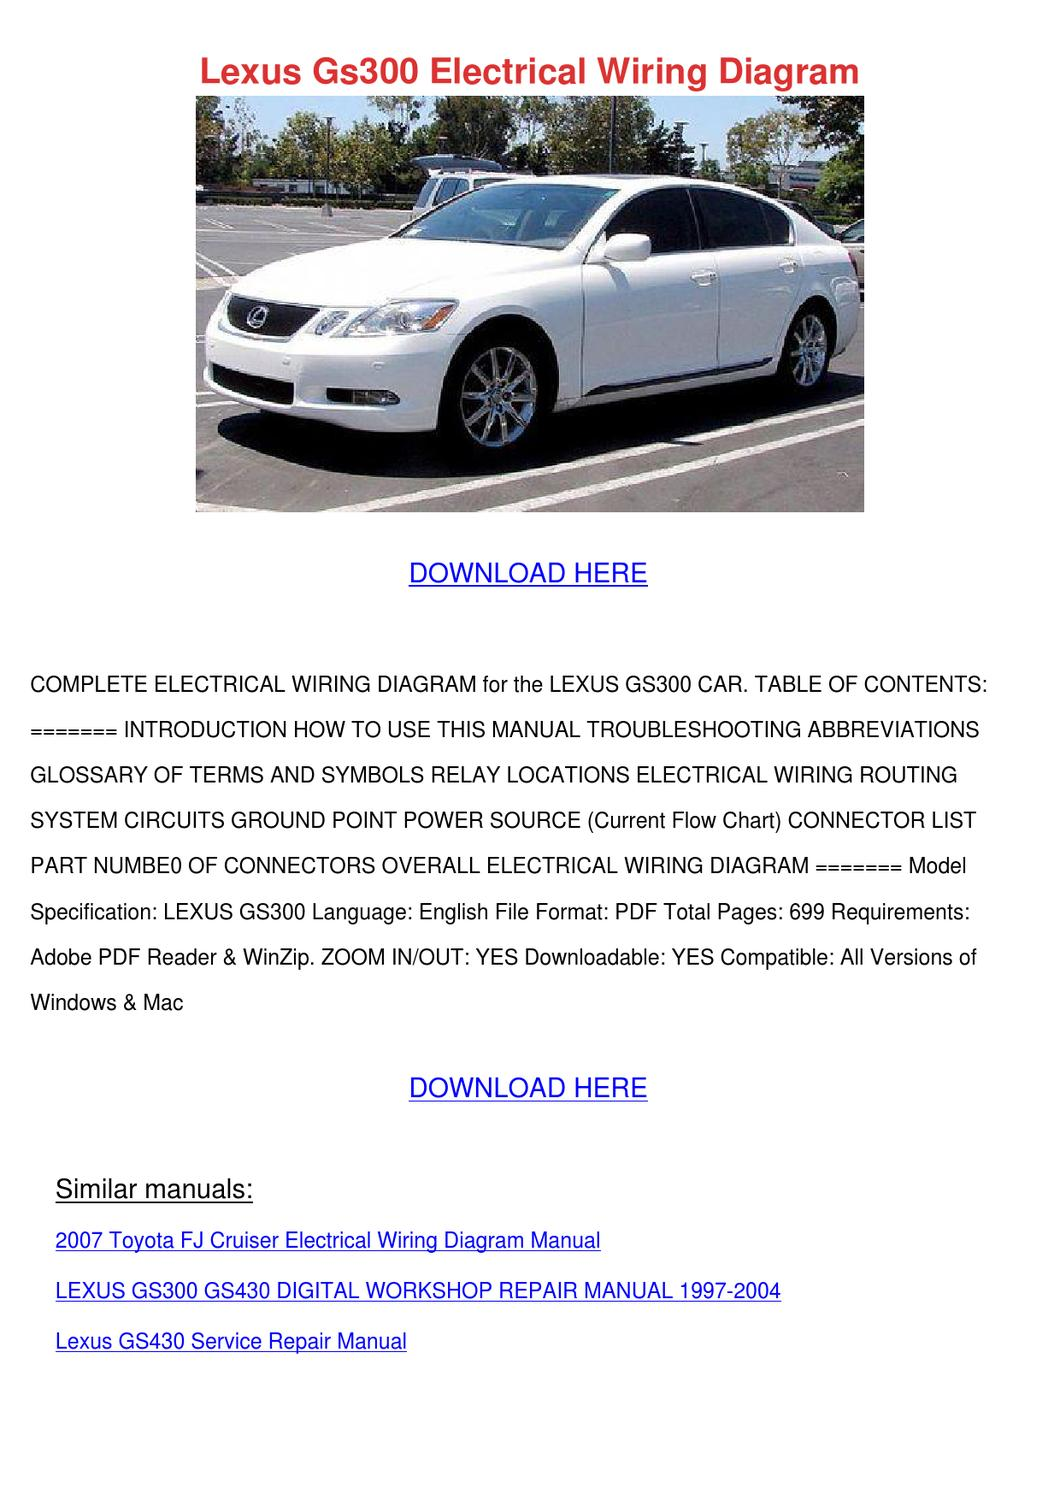 page_1 lexus gs300 electrical wiring diagram by forrestegan issuu Kubota Electrical Wiring Diagram at webbmarketing.co